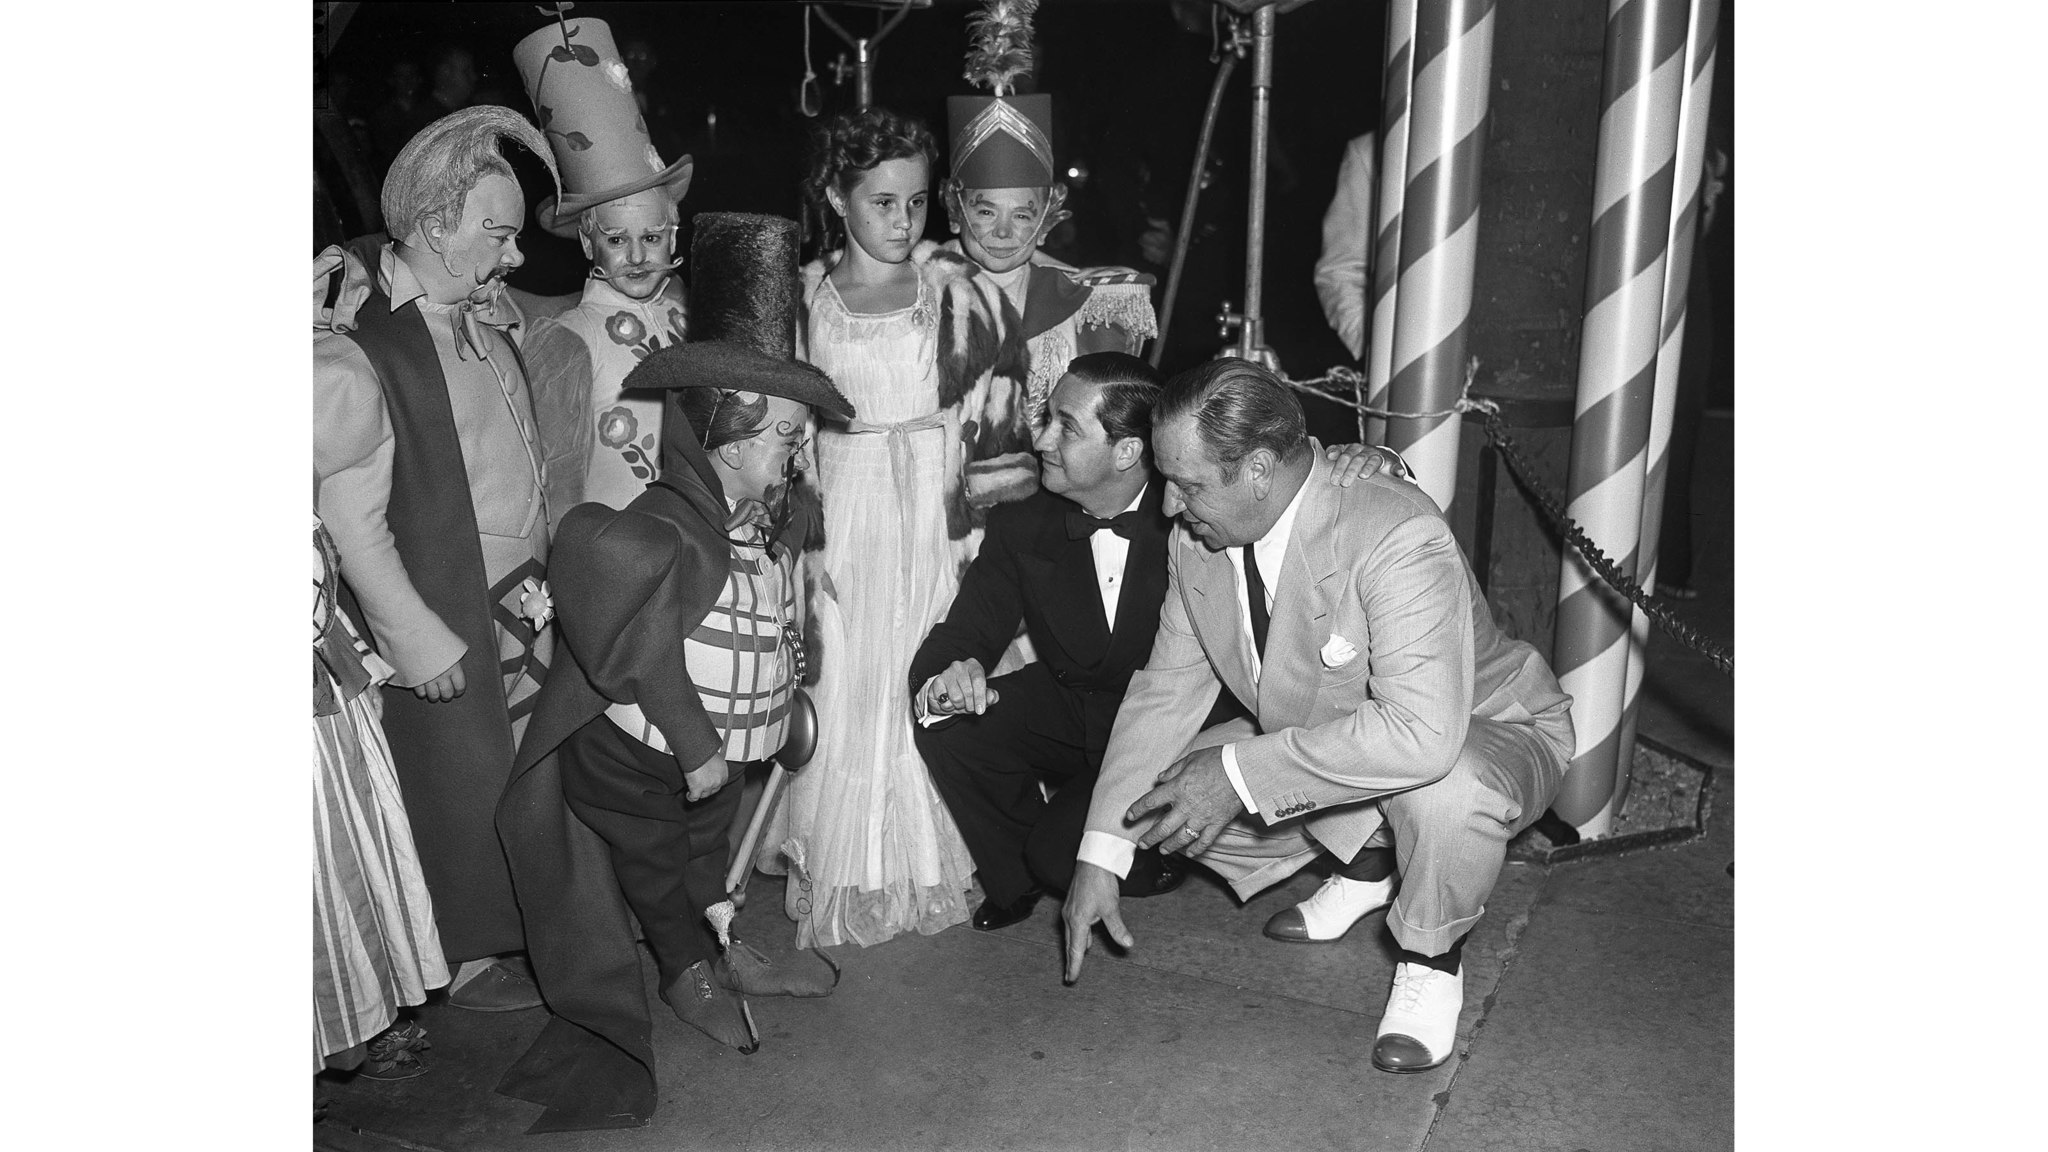 From the Archives: Munchkins at premiere of 'Wizard of Oz' | Los Angeles Times